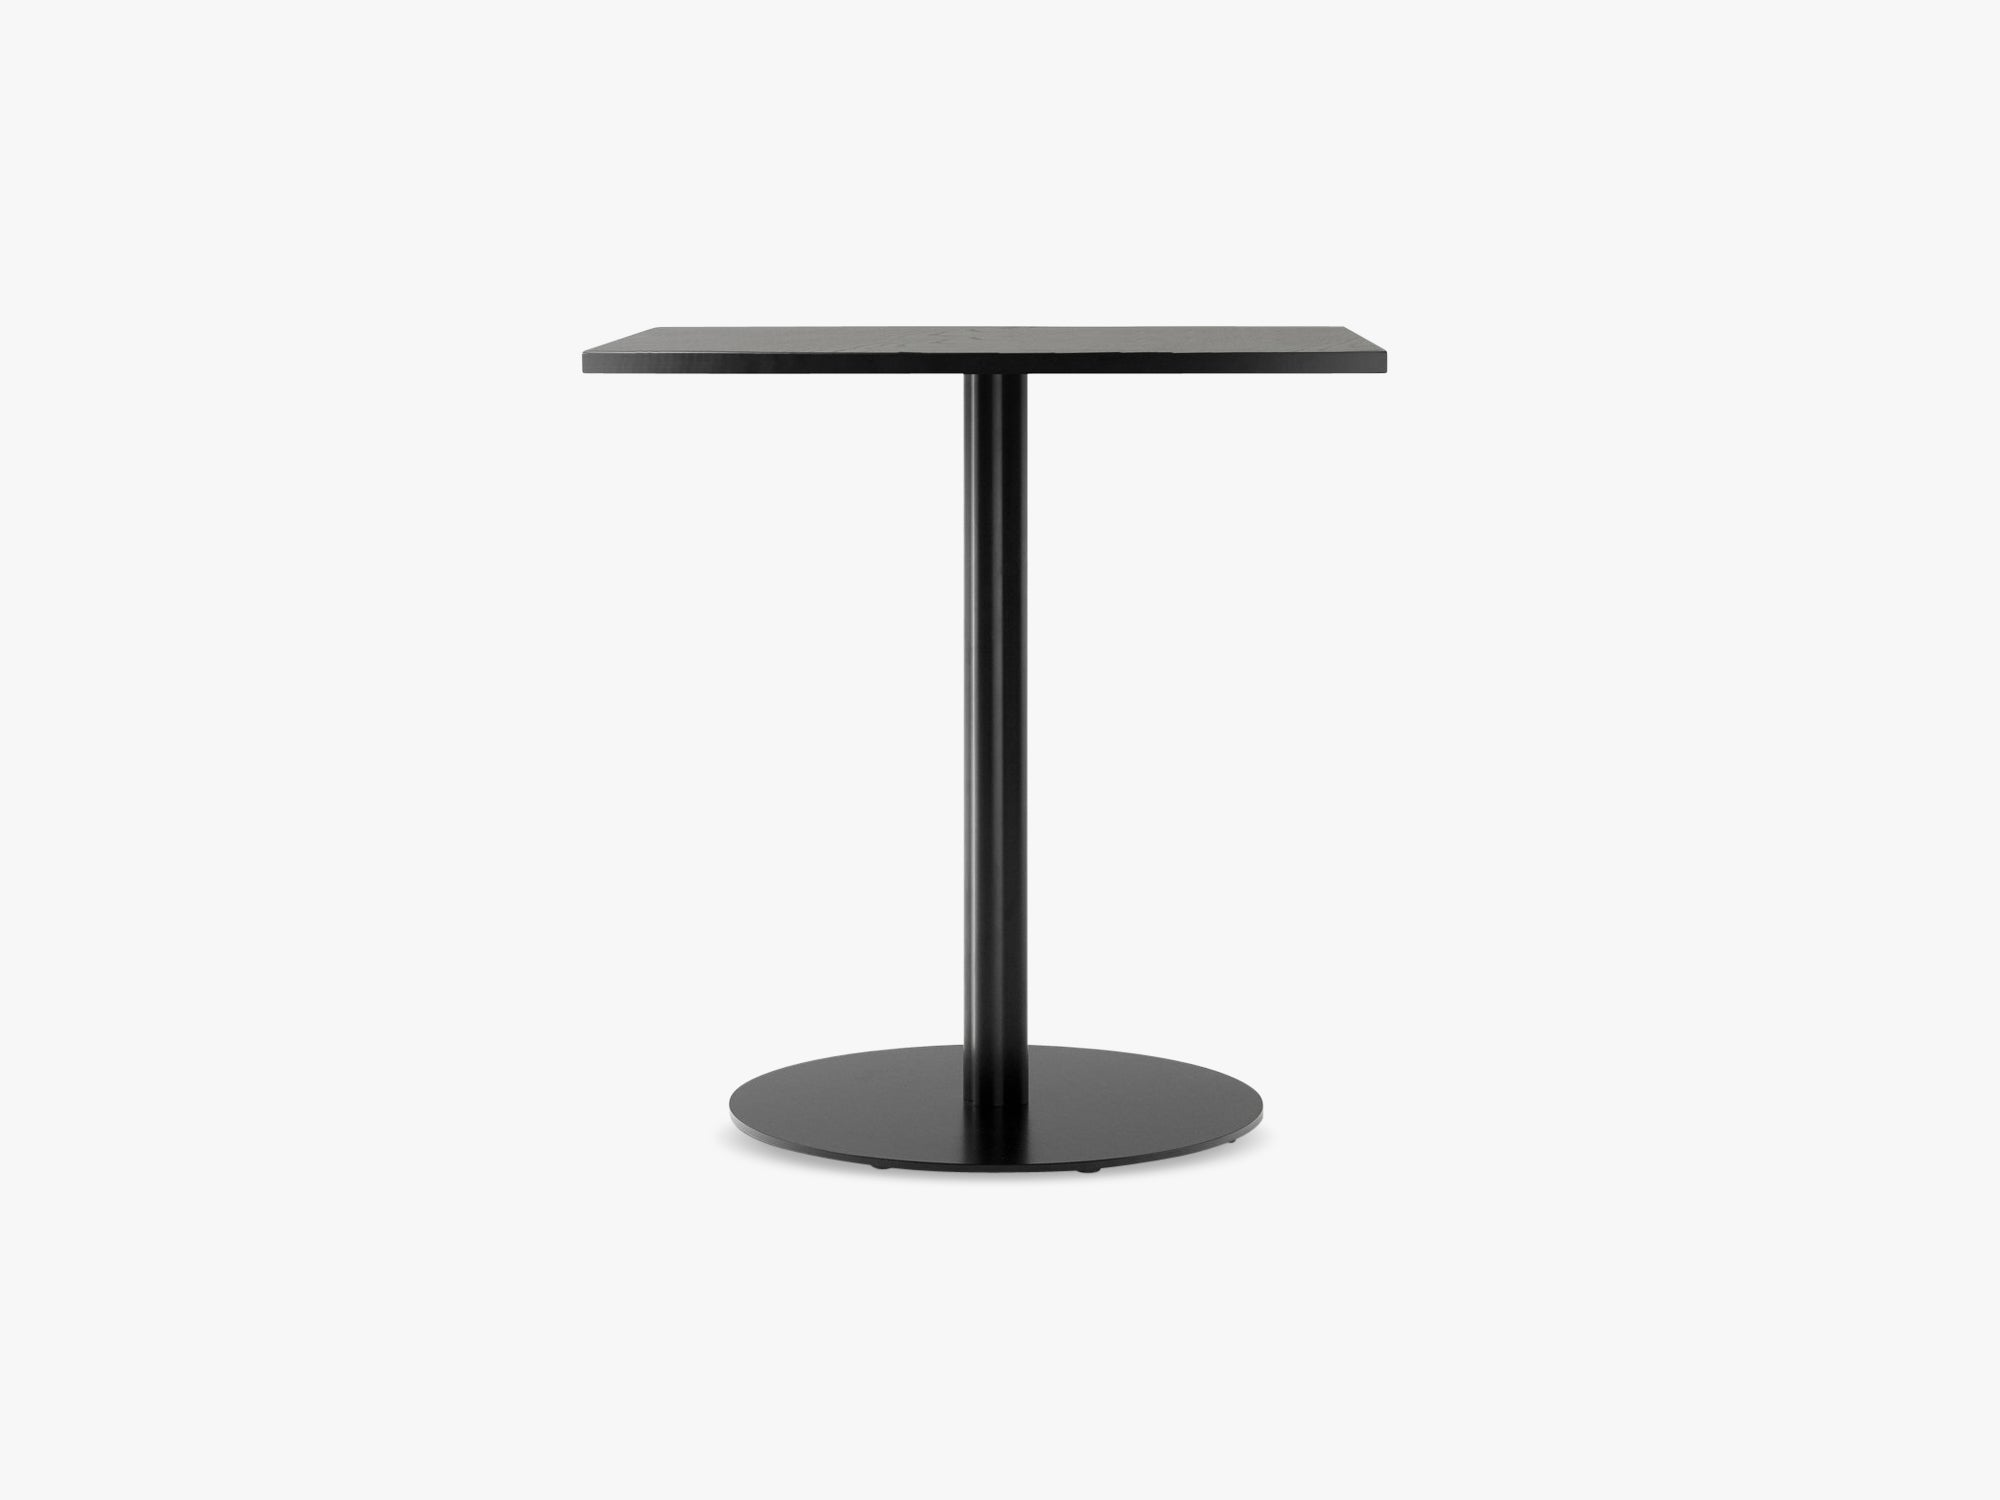 Harbour Column Dining Table 60x70 - Charcoal Linoleum with Black Base fra Menu